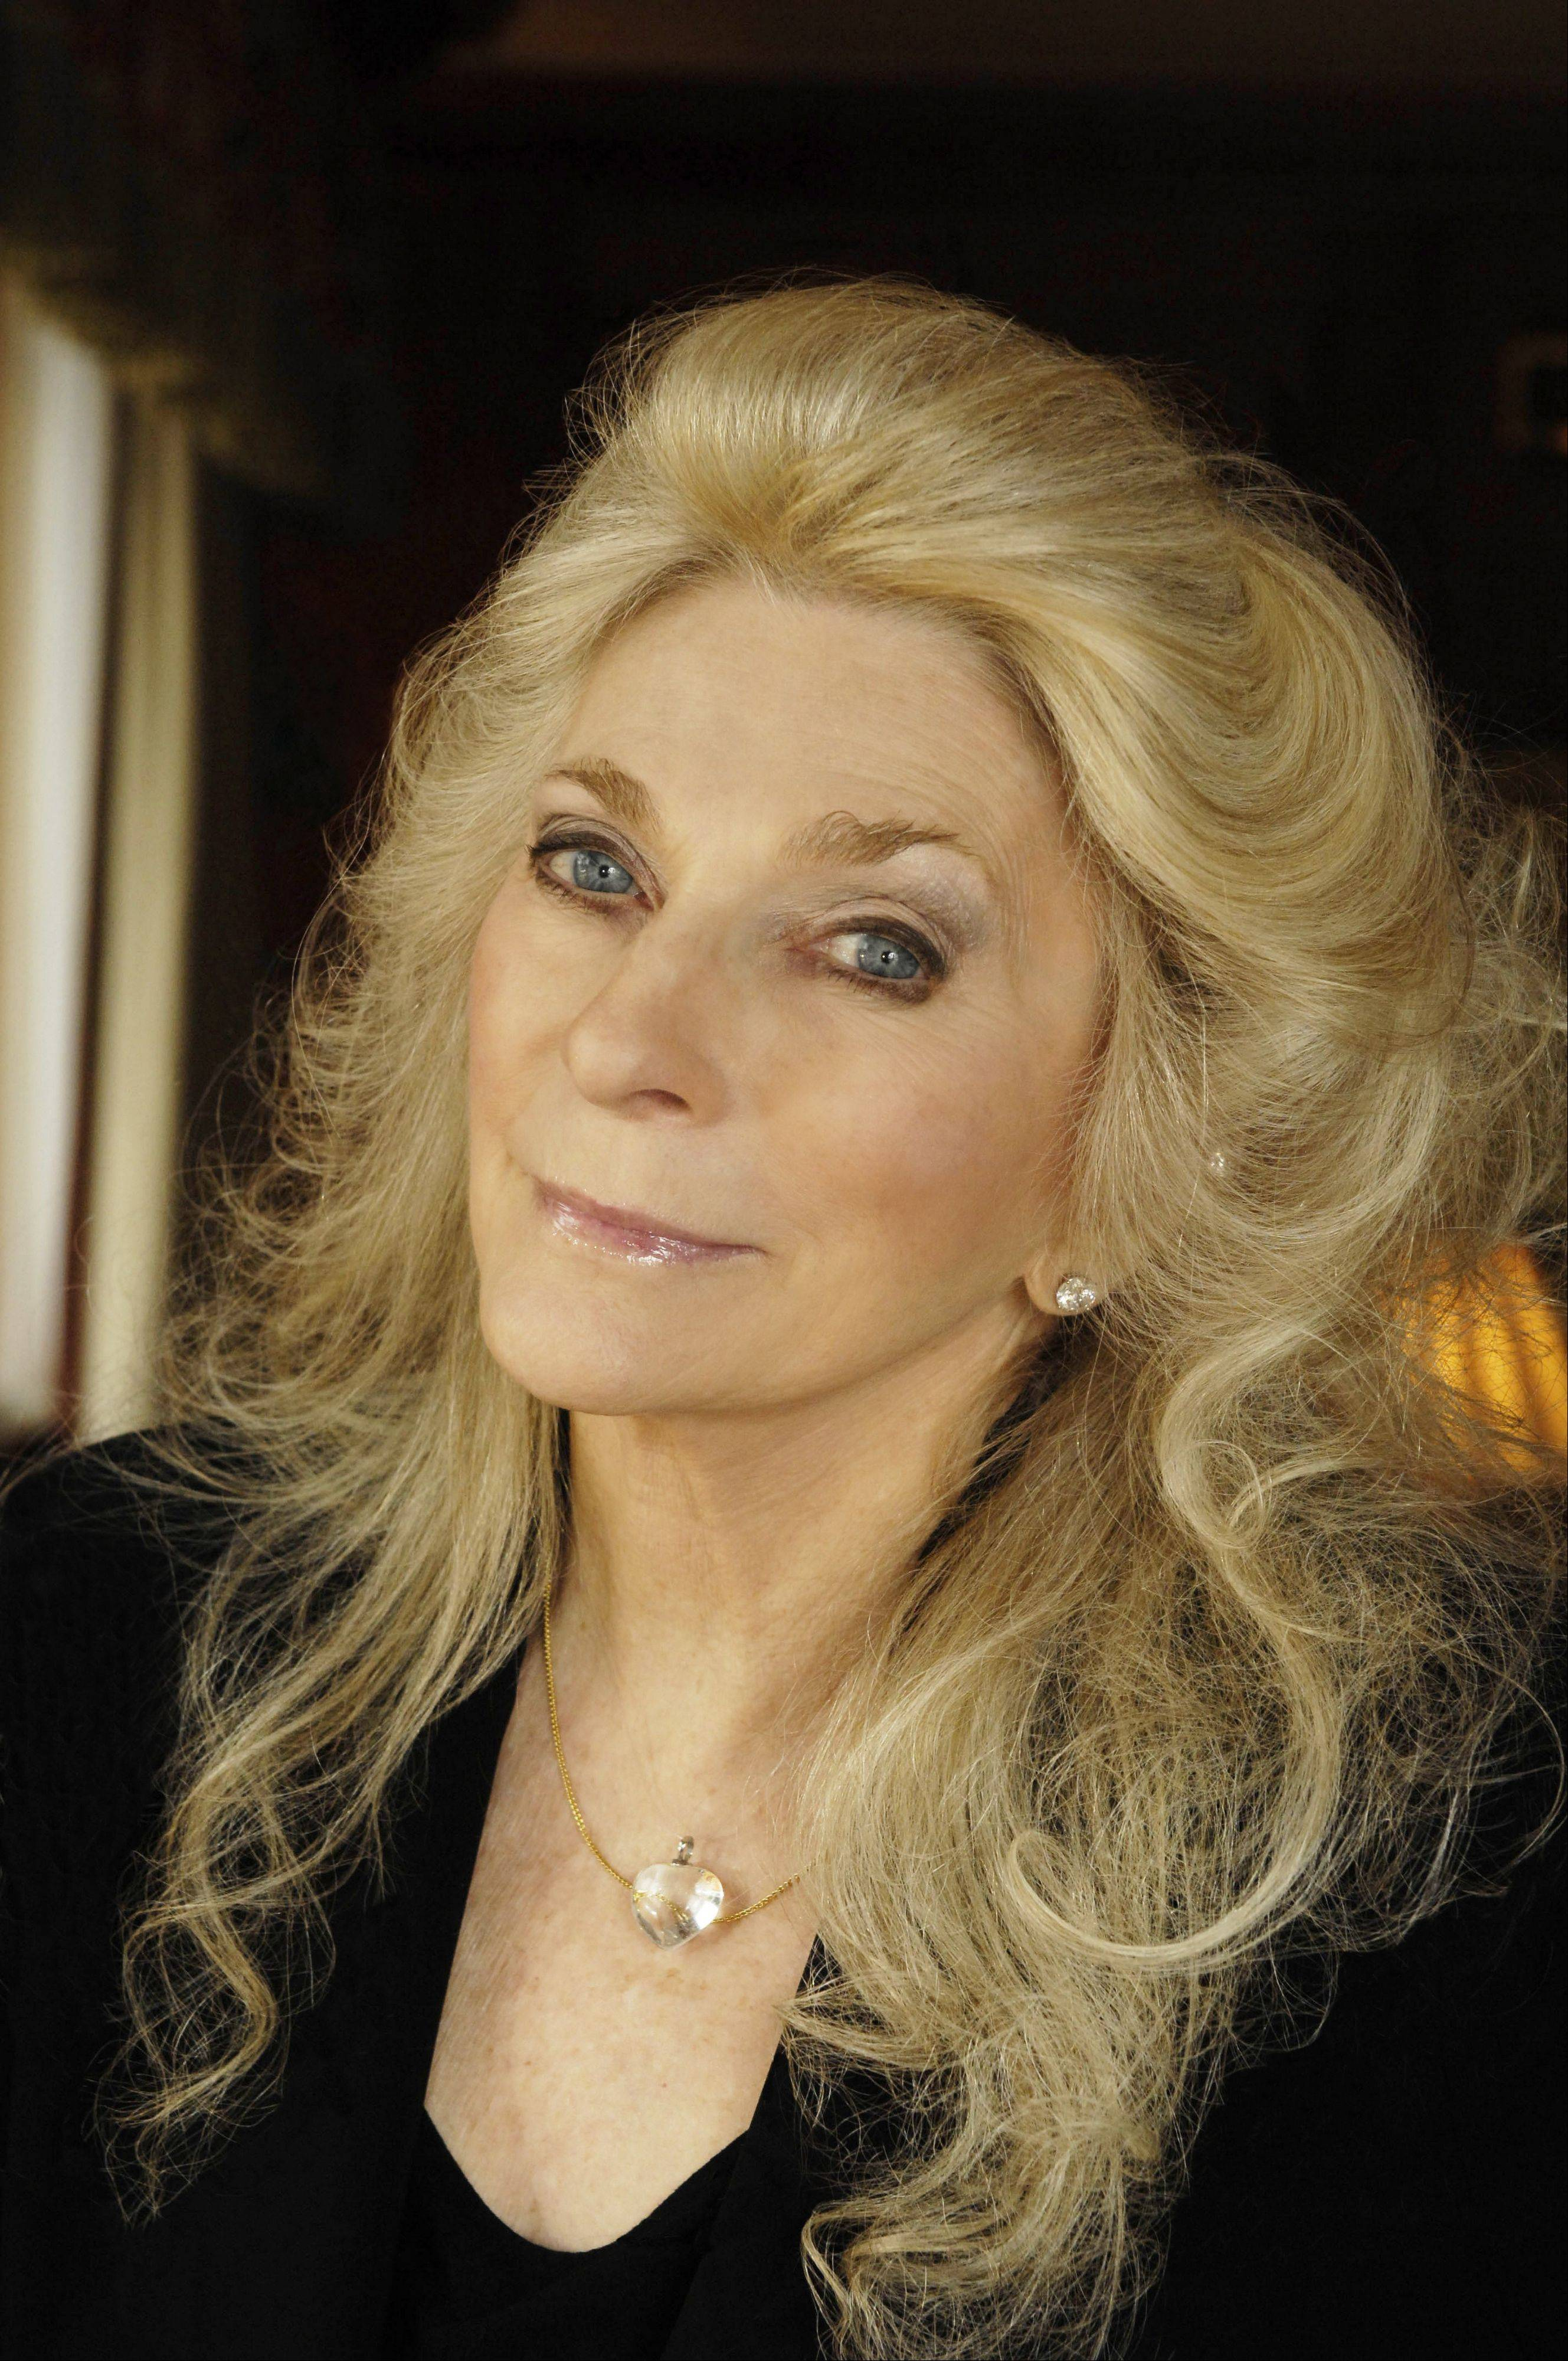 Legendary folk singer Judy Collins headlines Evanston SPACE on Friday, Feb. 8.